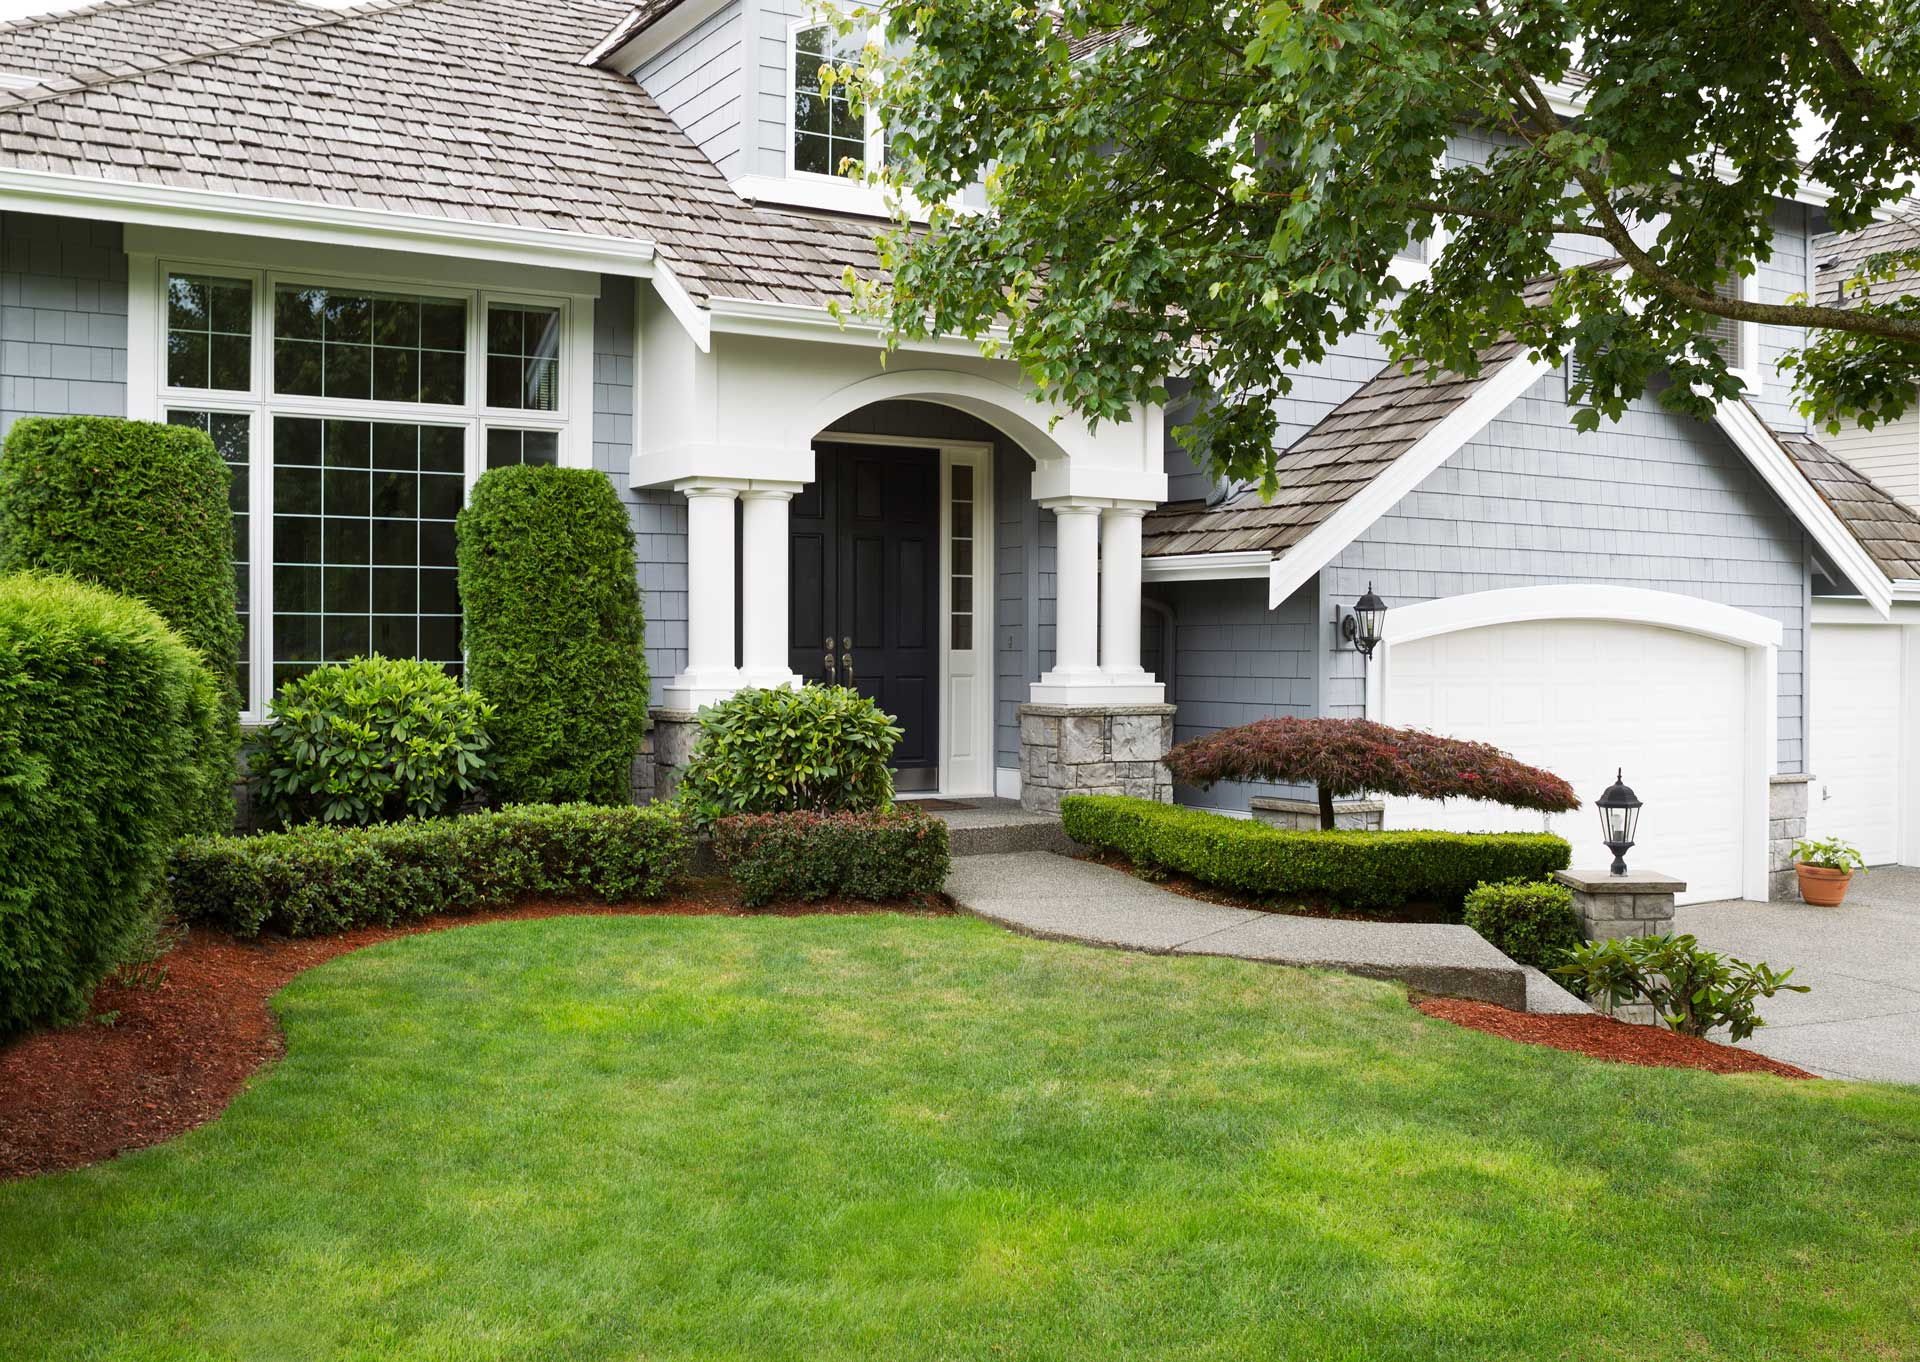 Carpet Keepers tips for staging home for sale in Loudoun County